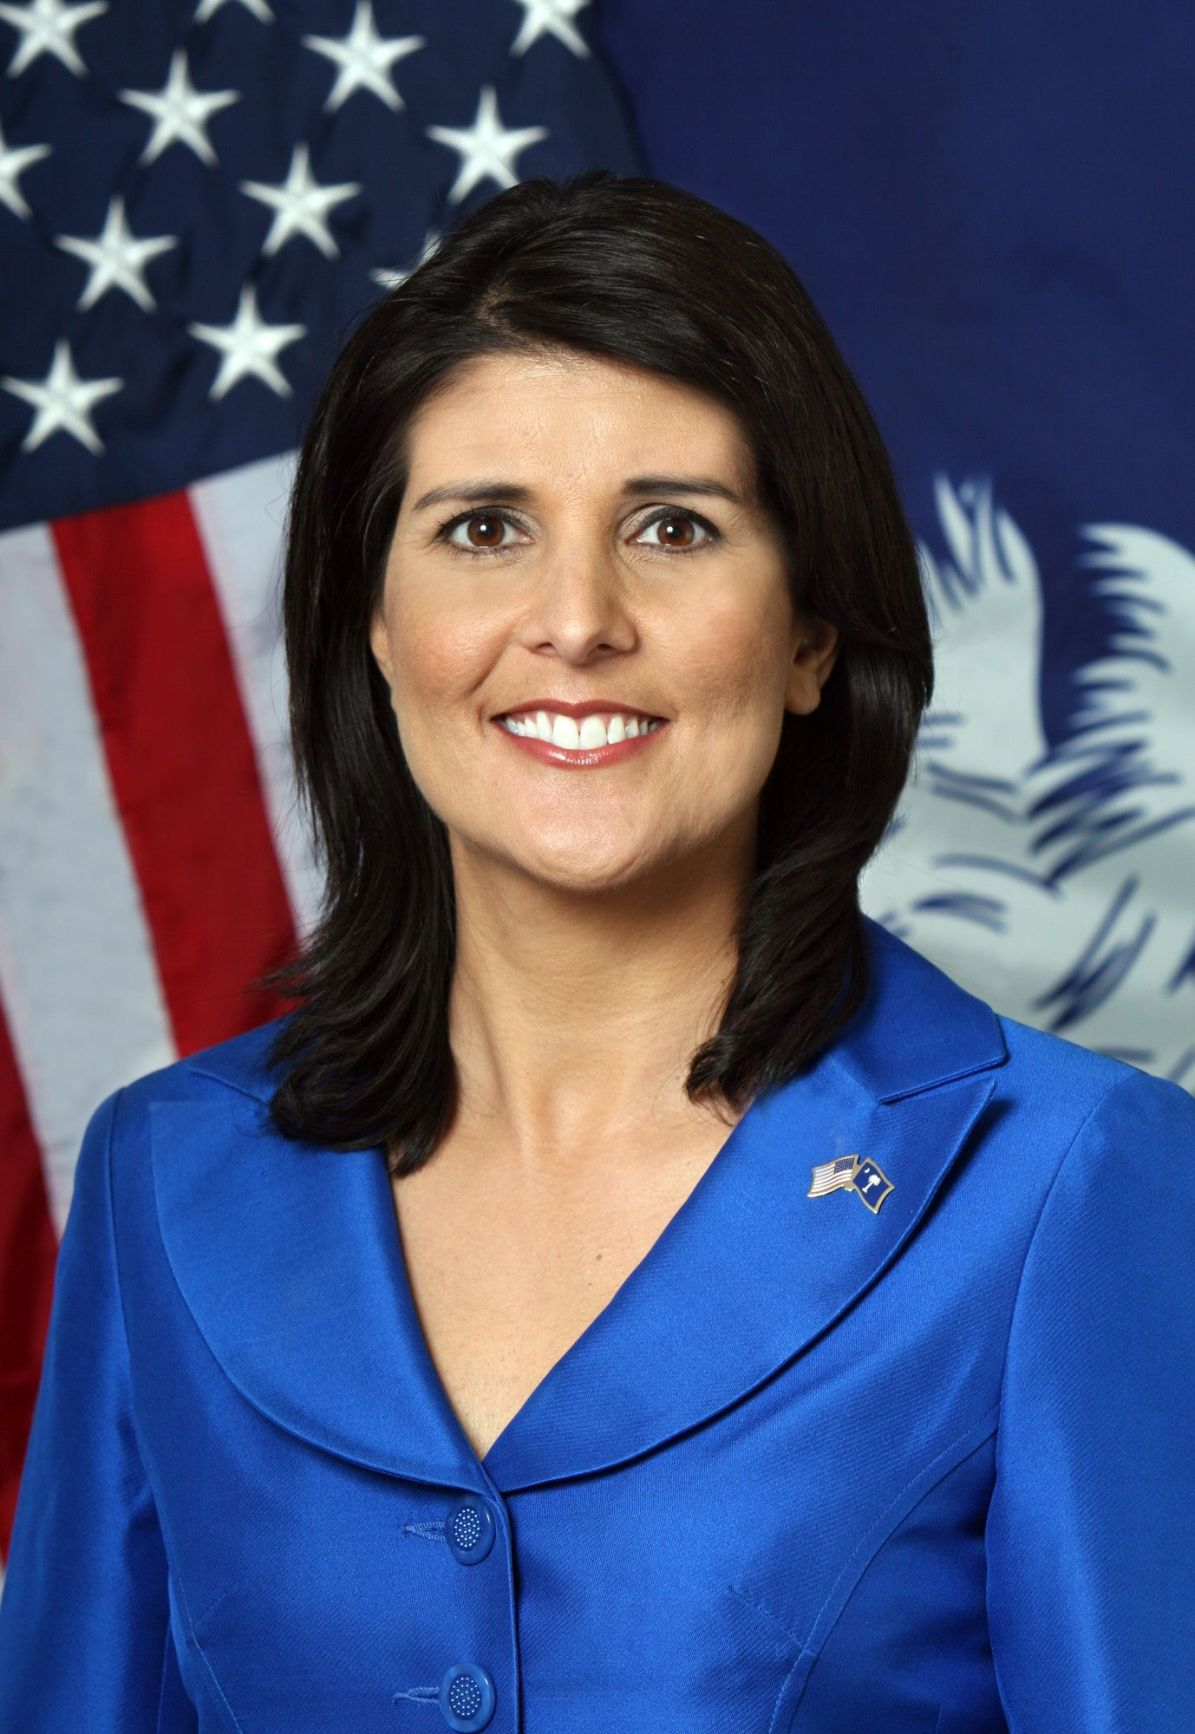 Haley to speak at Medicaid conference